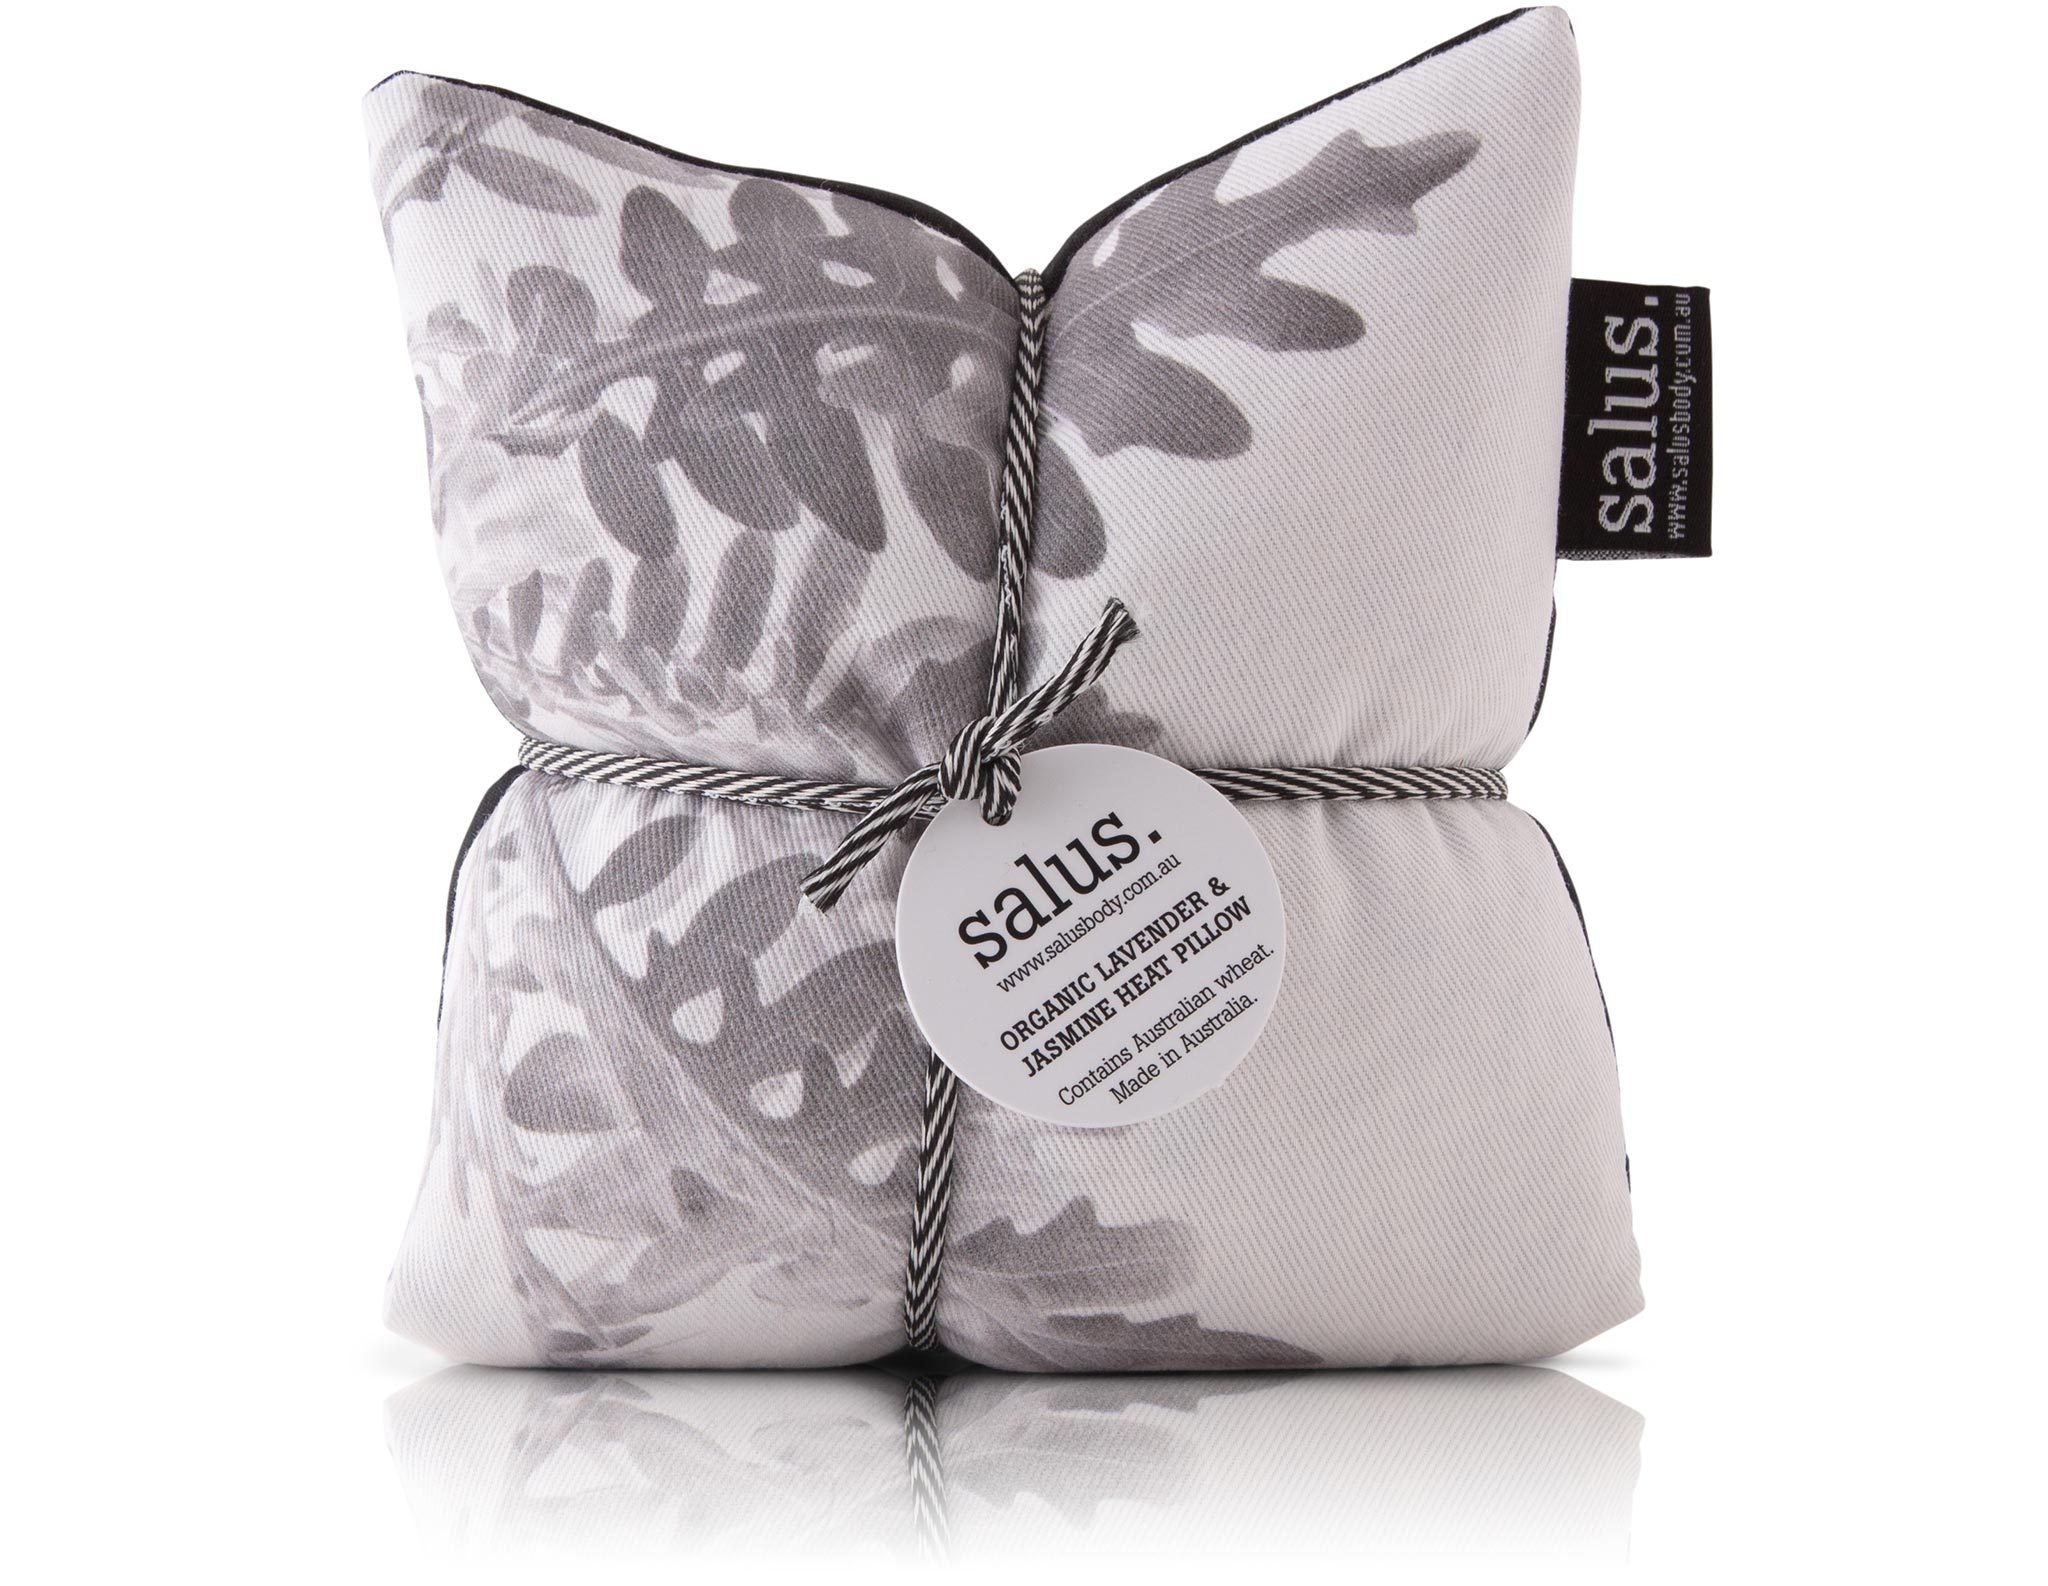 Salus Body - Lavender & Jasmine Heat Pillow - Grey Botanical